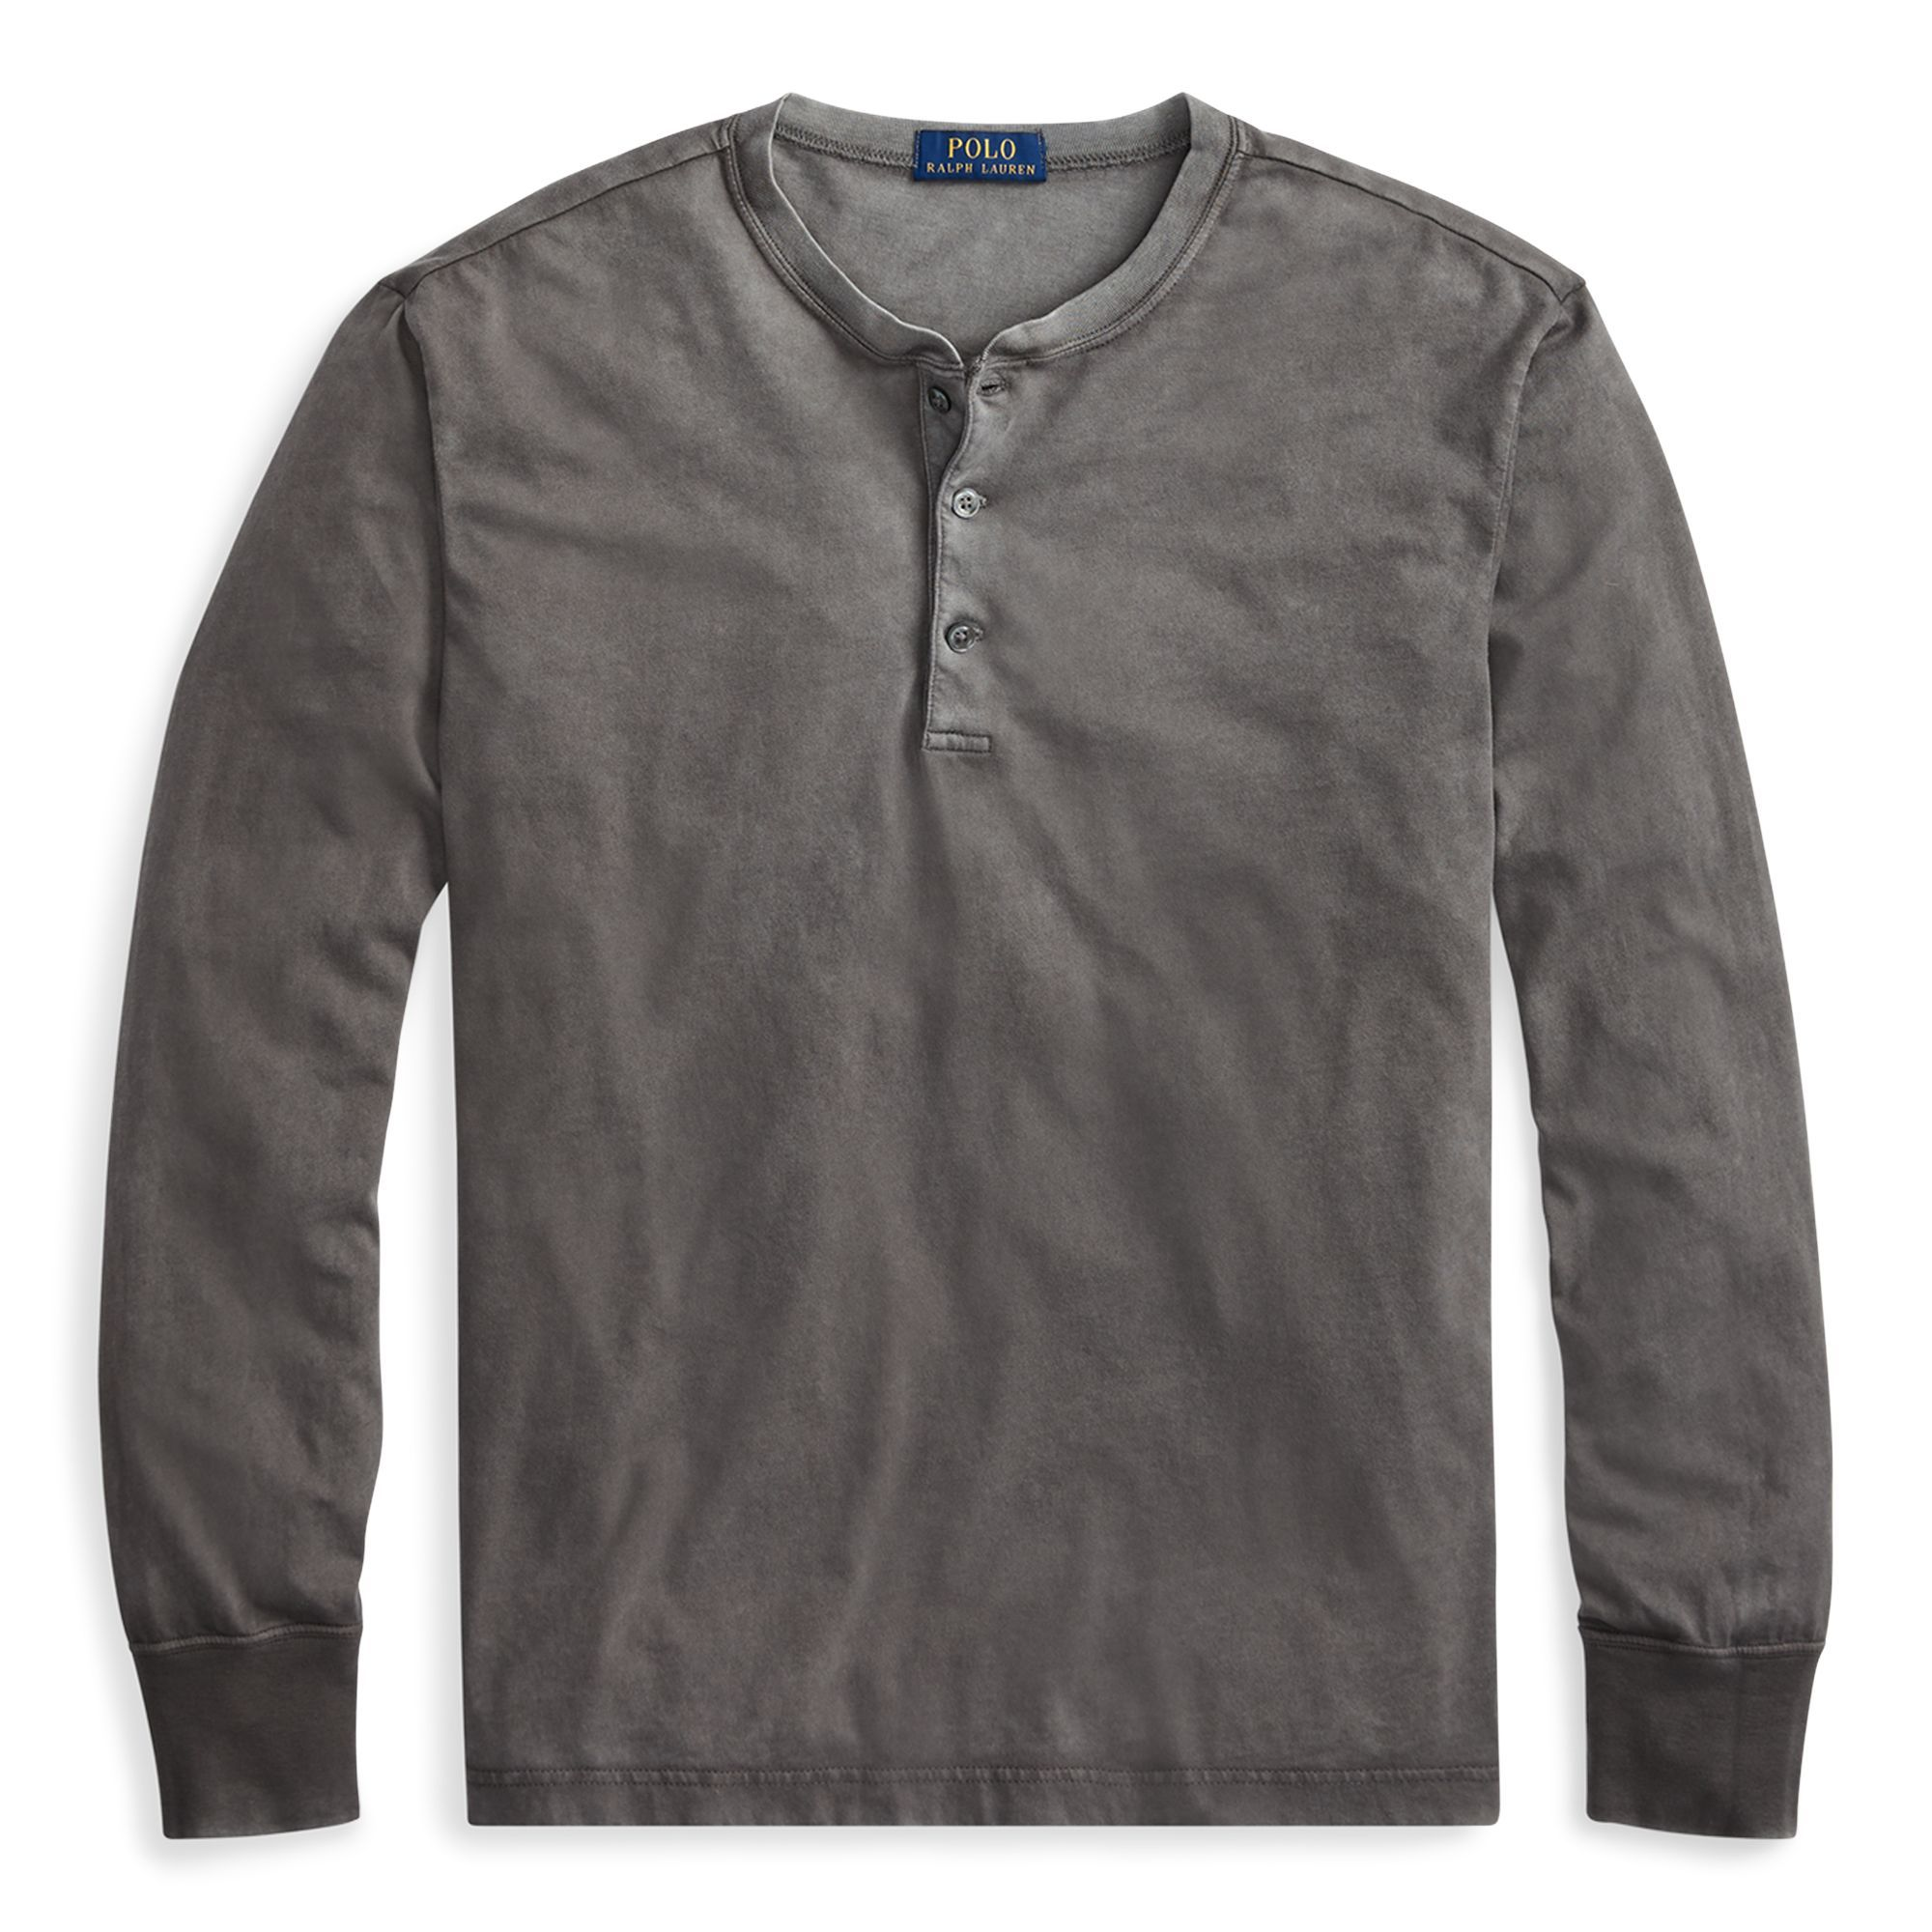 b6b101094 The 11 Best Henley Shirts for Men to Wear Fall 2018